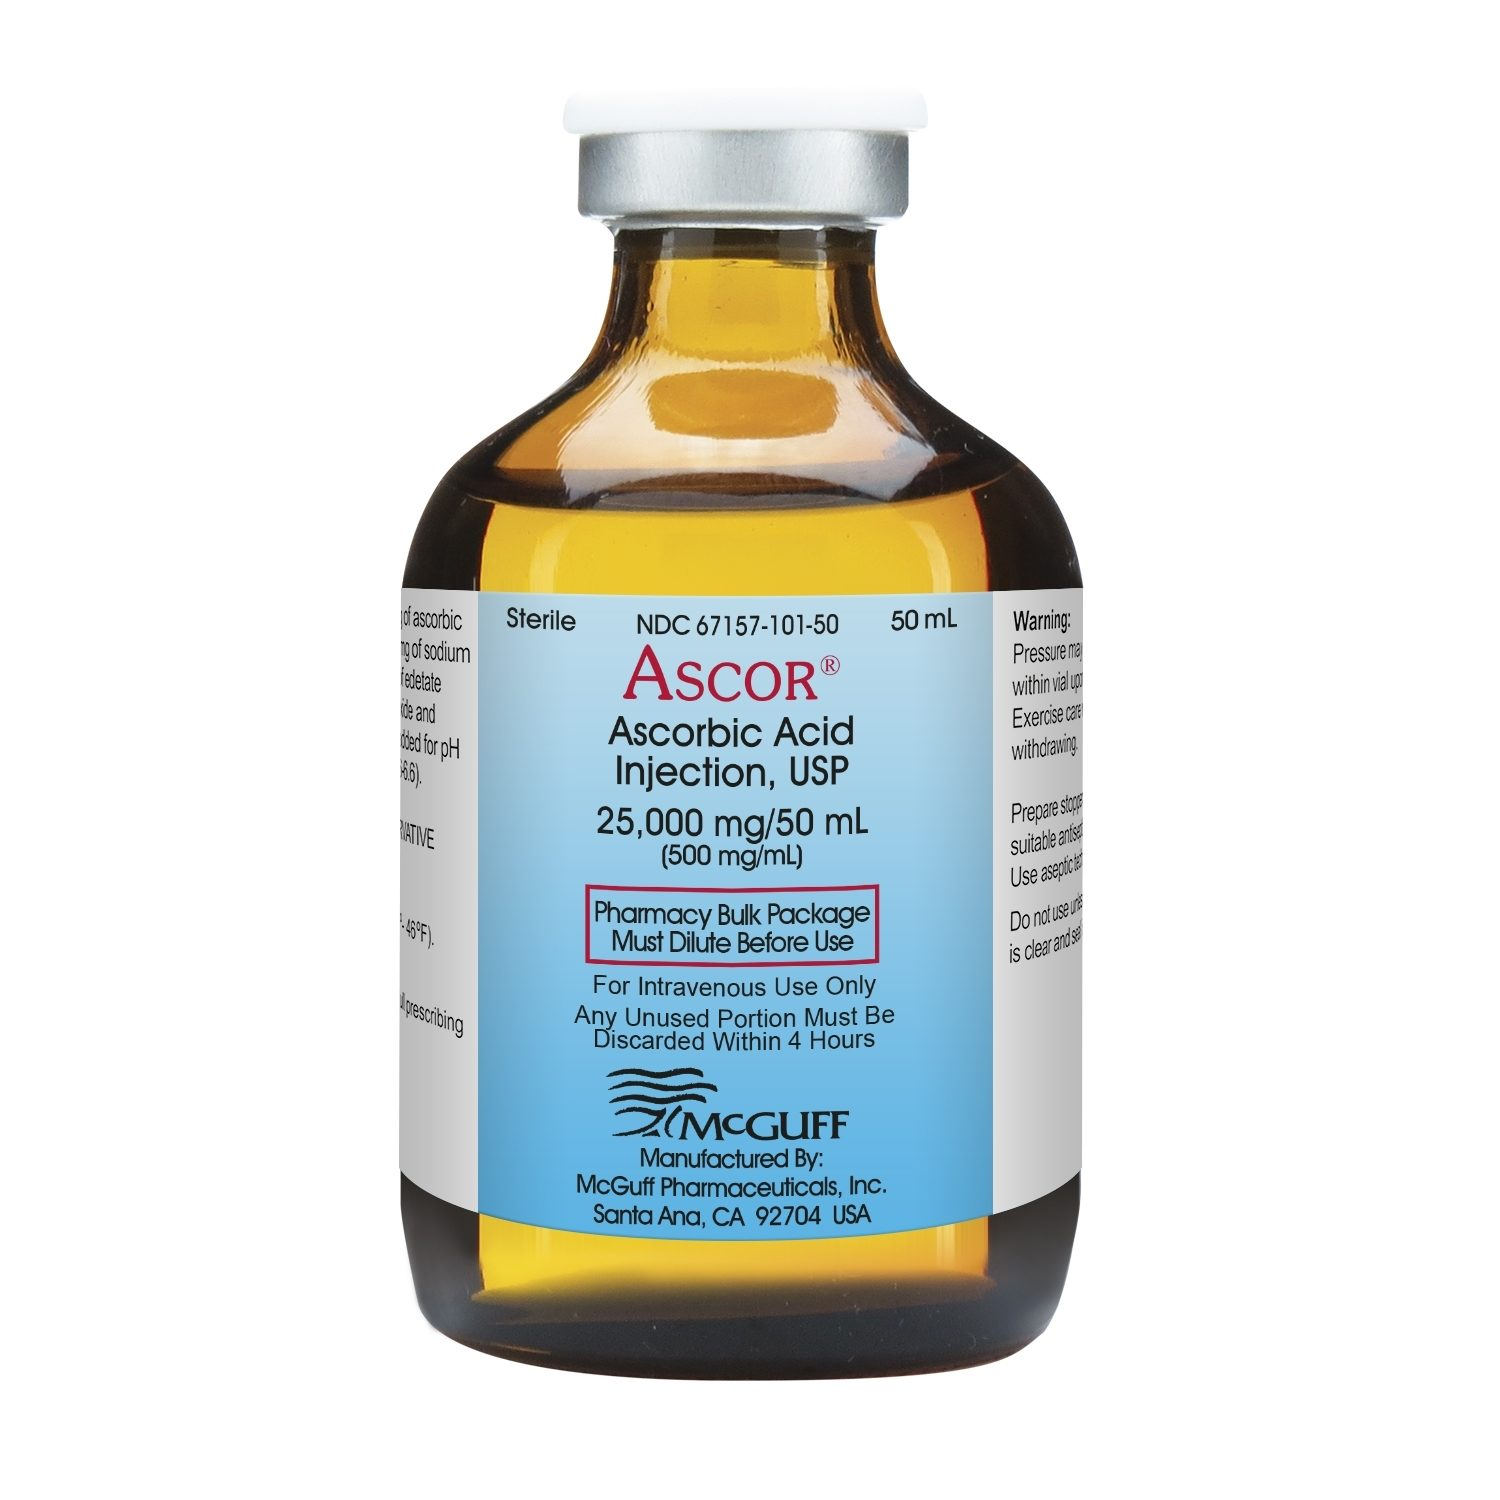 Ascor Ascorbic Acid Injection Usp 500mg Ml 50ml Vial Mcguff Medical Products